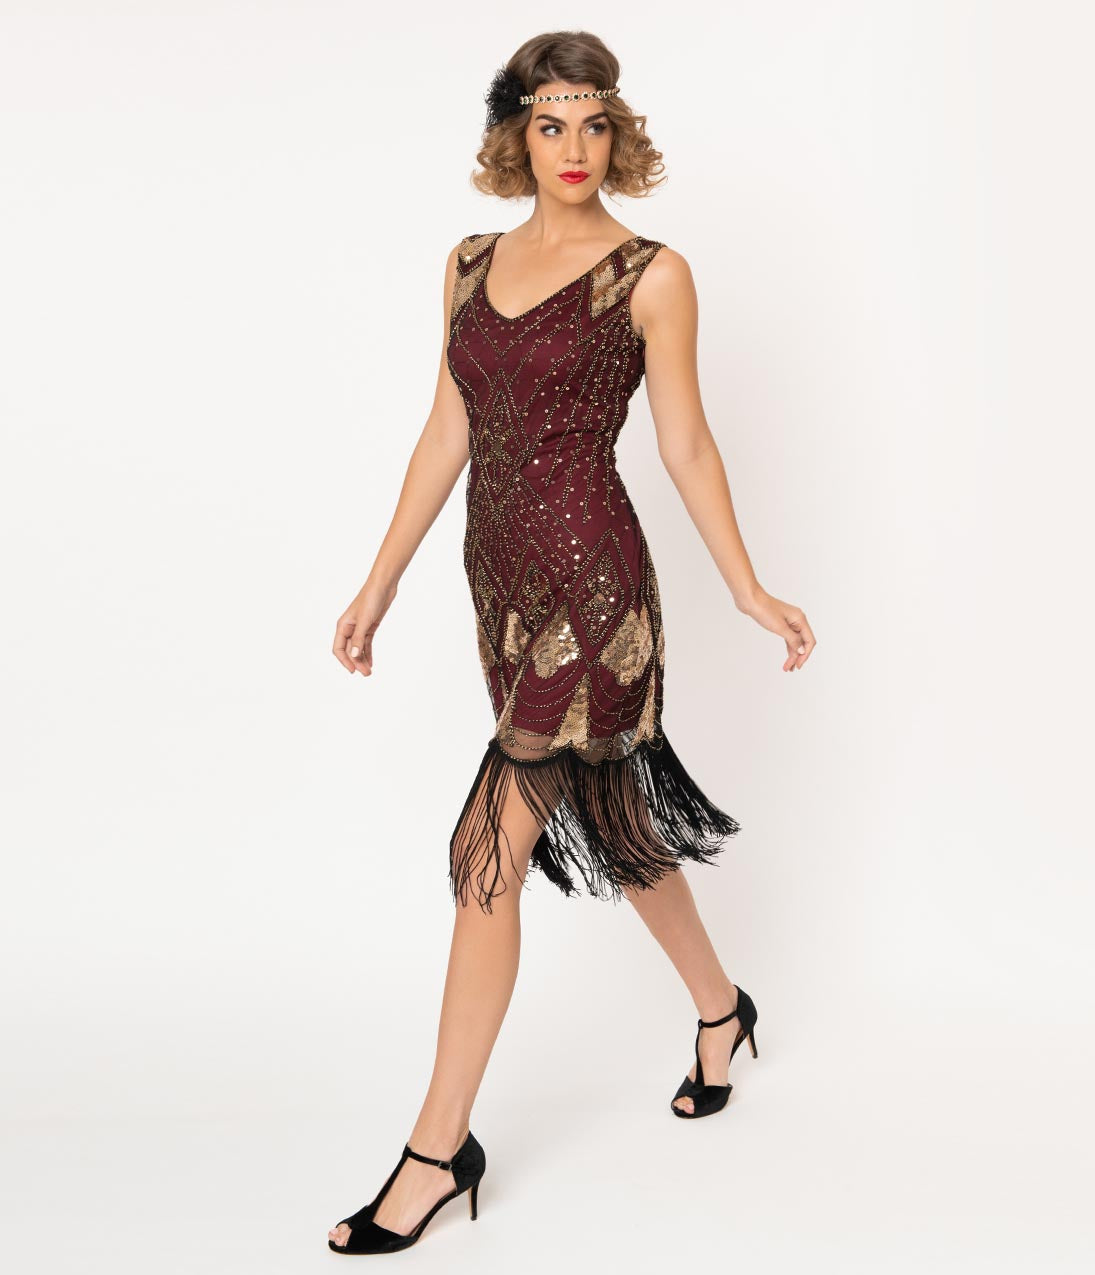 1920s Formal Dresses & Evening Gowns Guide Unique Vintage Burgundy  Gold Sequin Lina Fringe Flapper Dress $98.00 AT vintagedancer.com